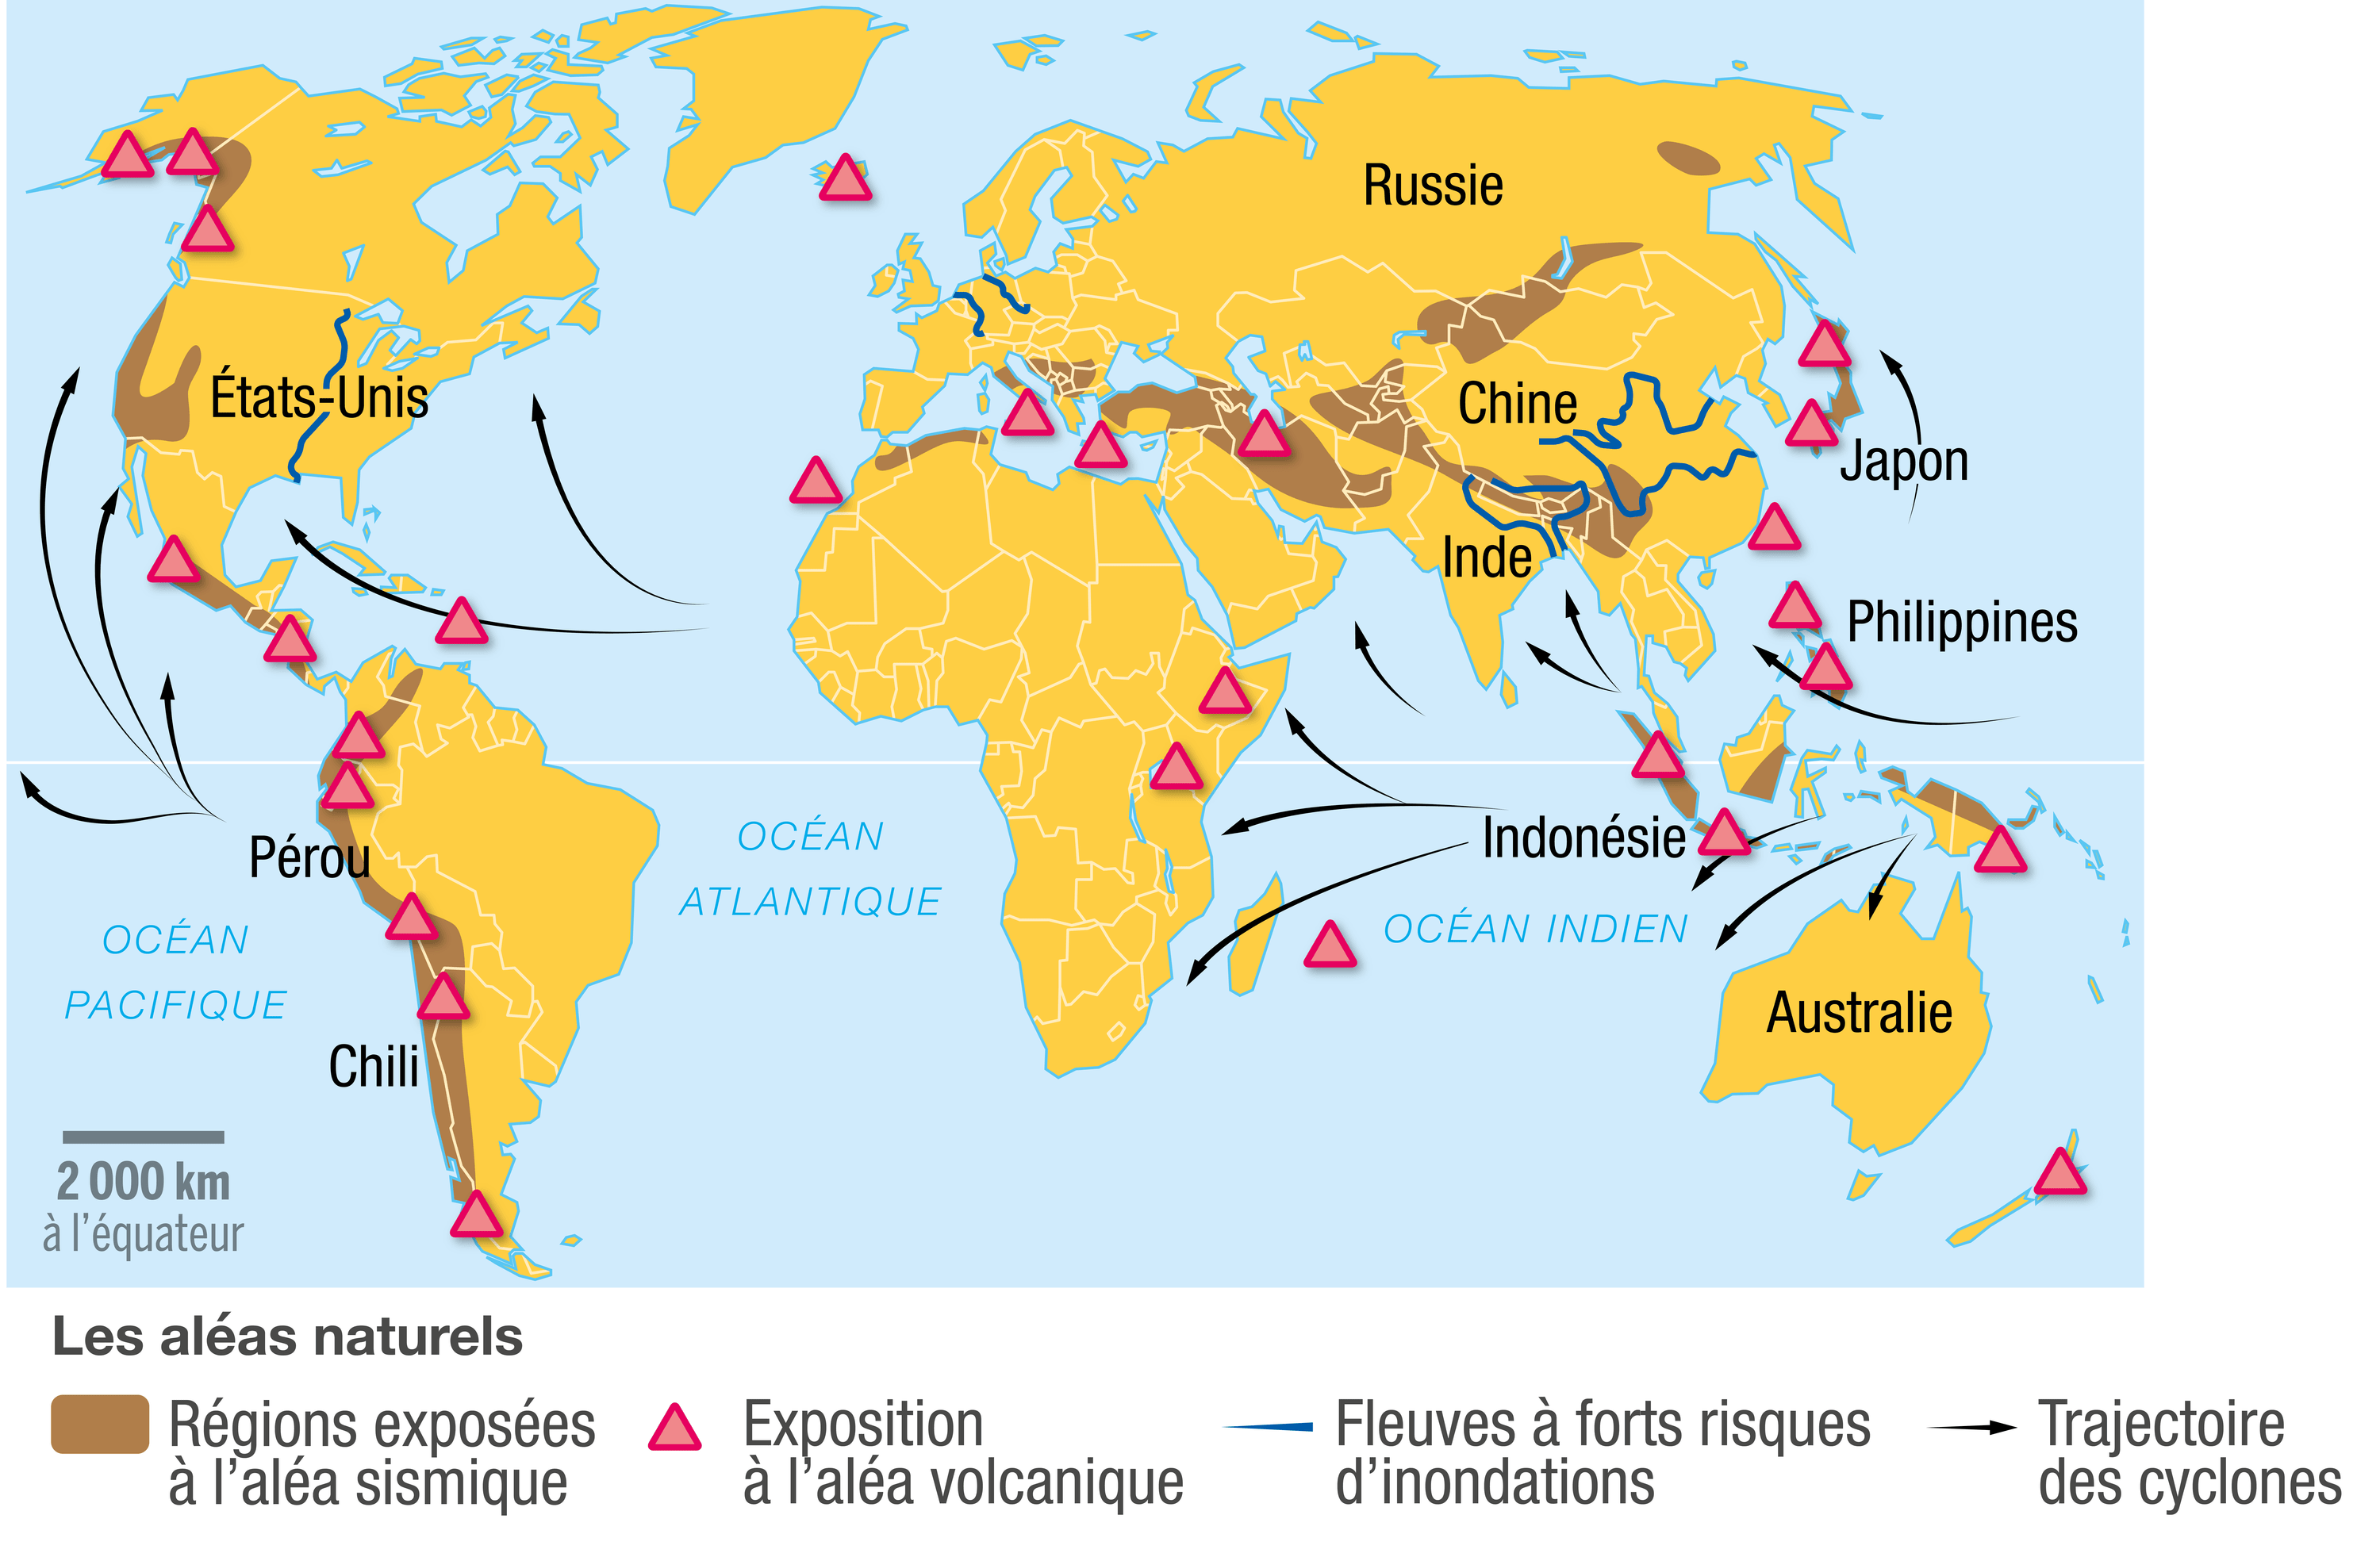 La r partition des al as dans le monde - Difference entre pyrolyse et catalyse ...